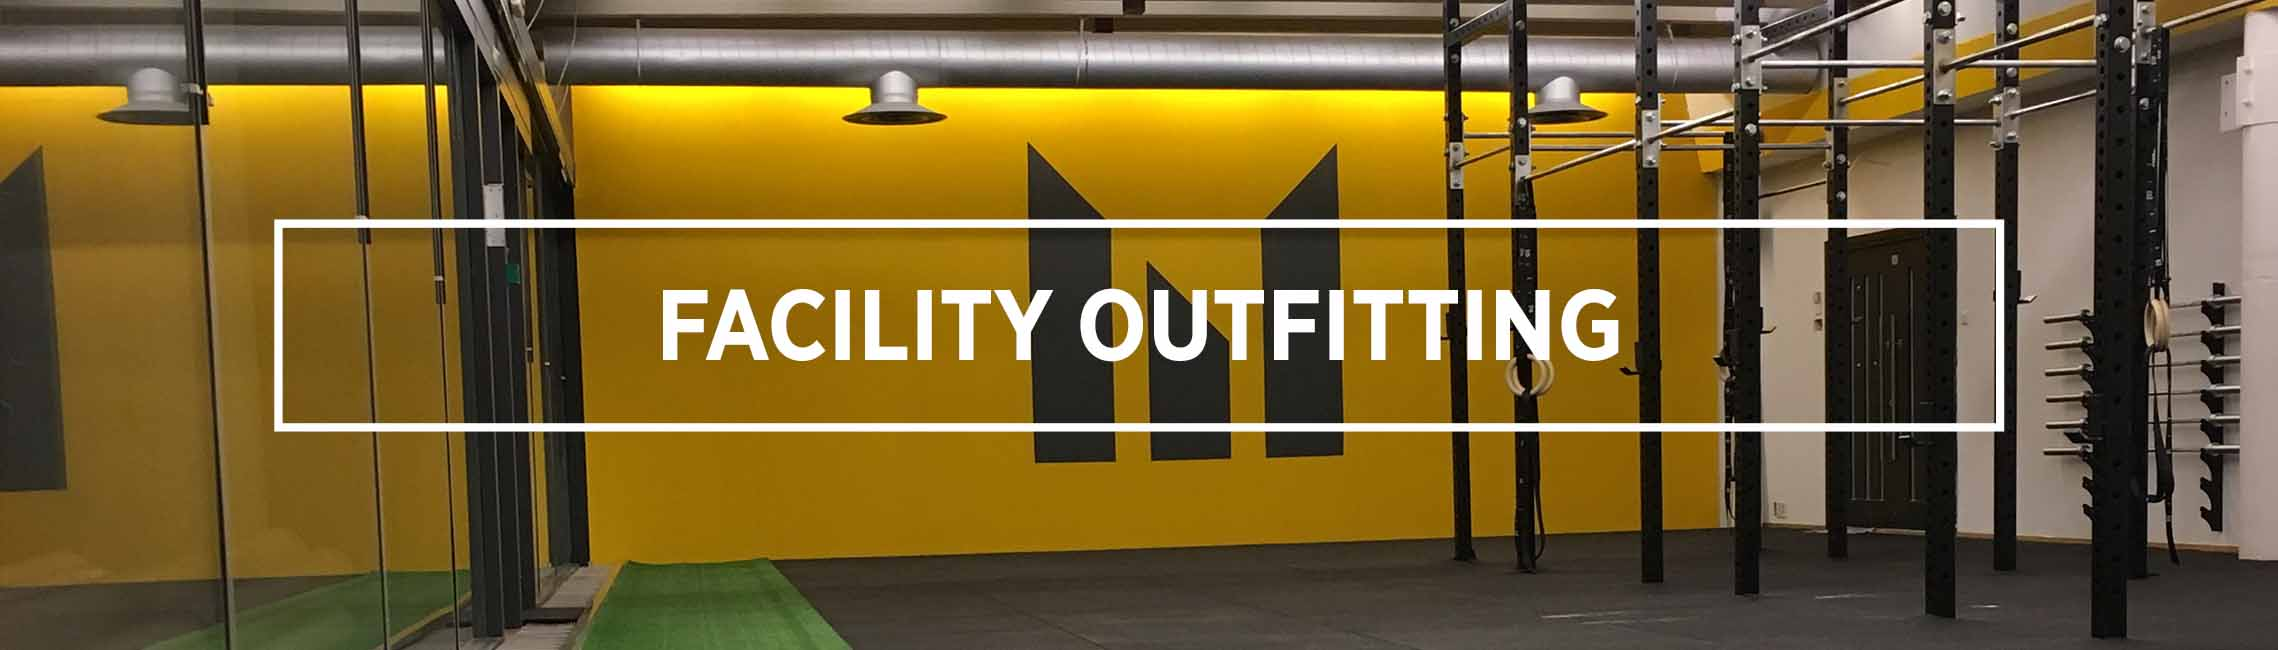 Facility Outfitting